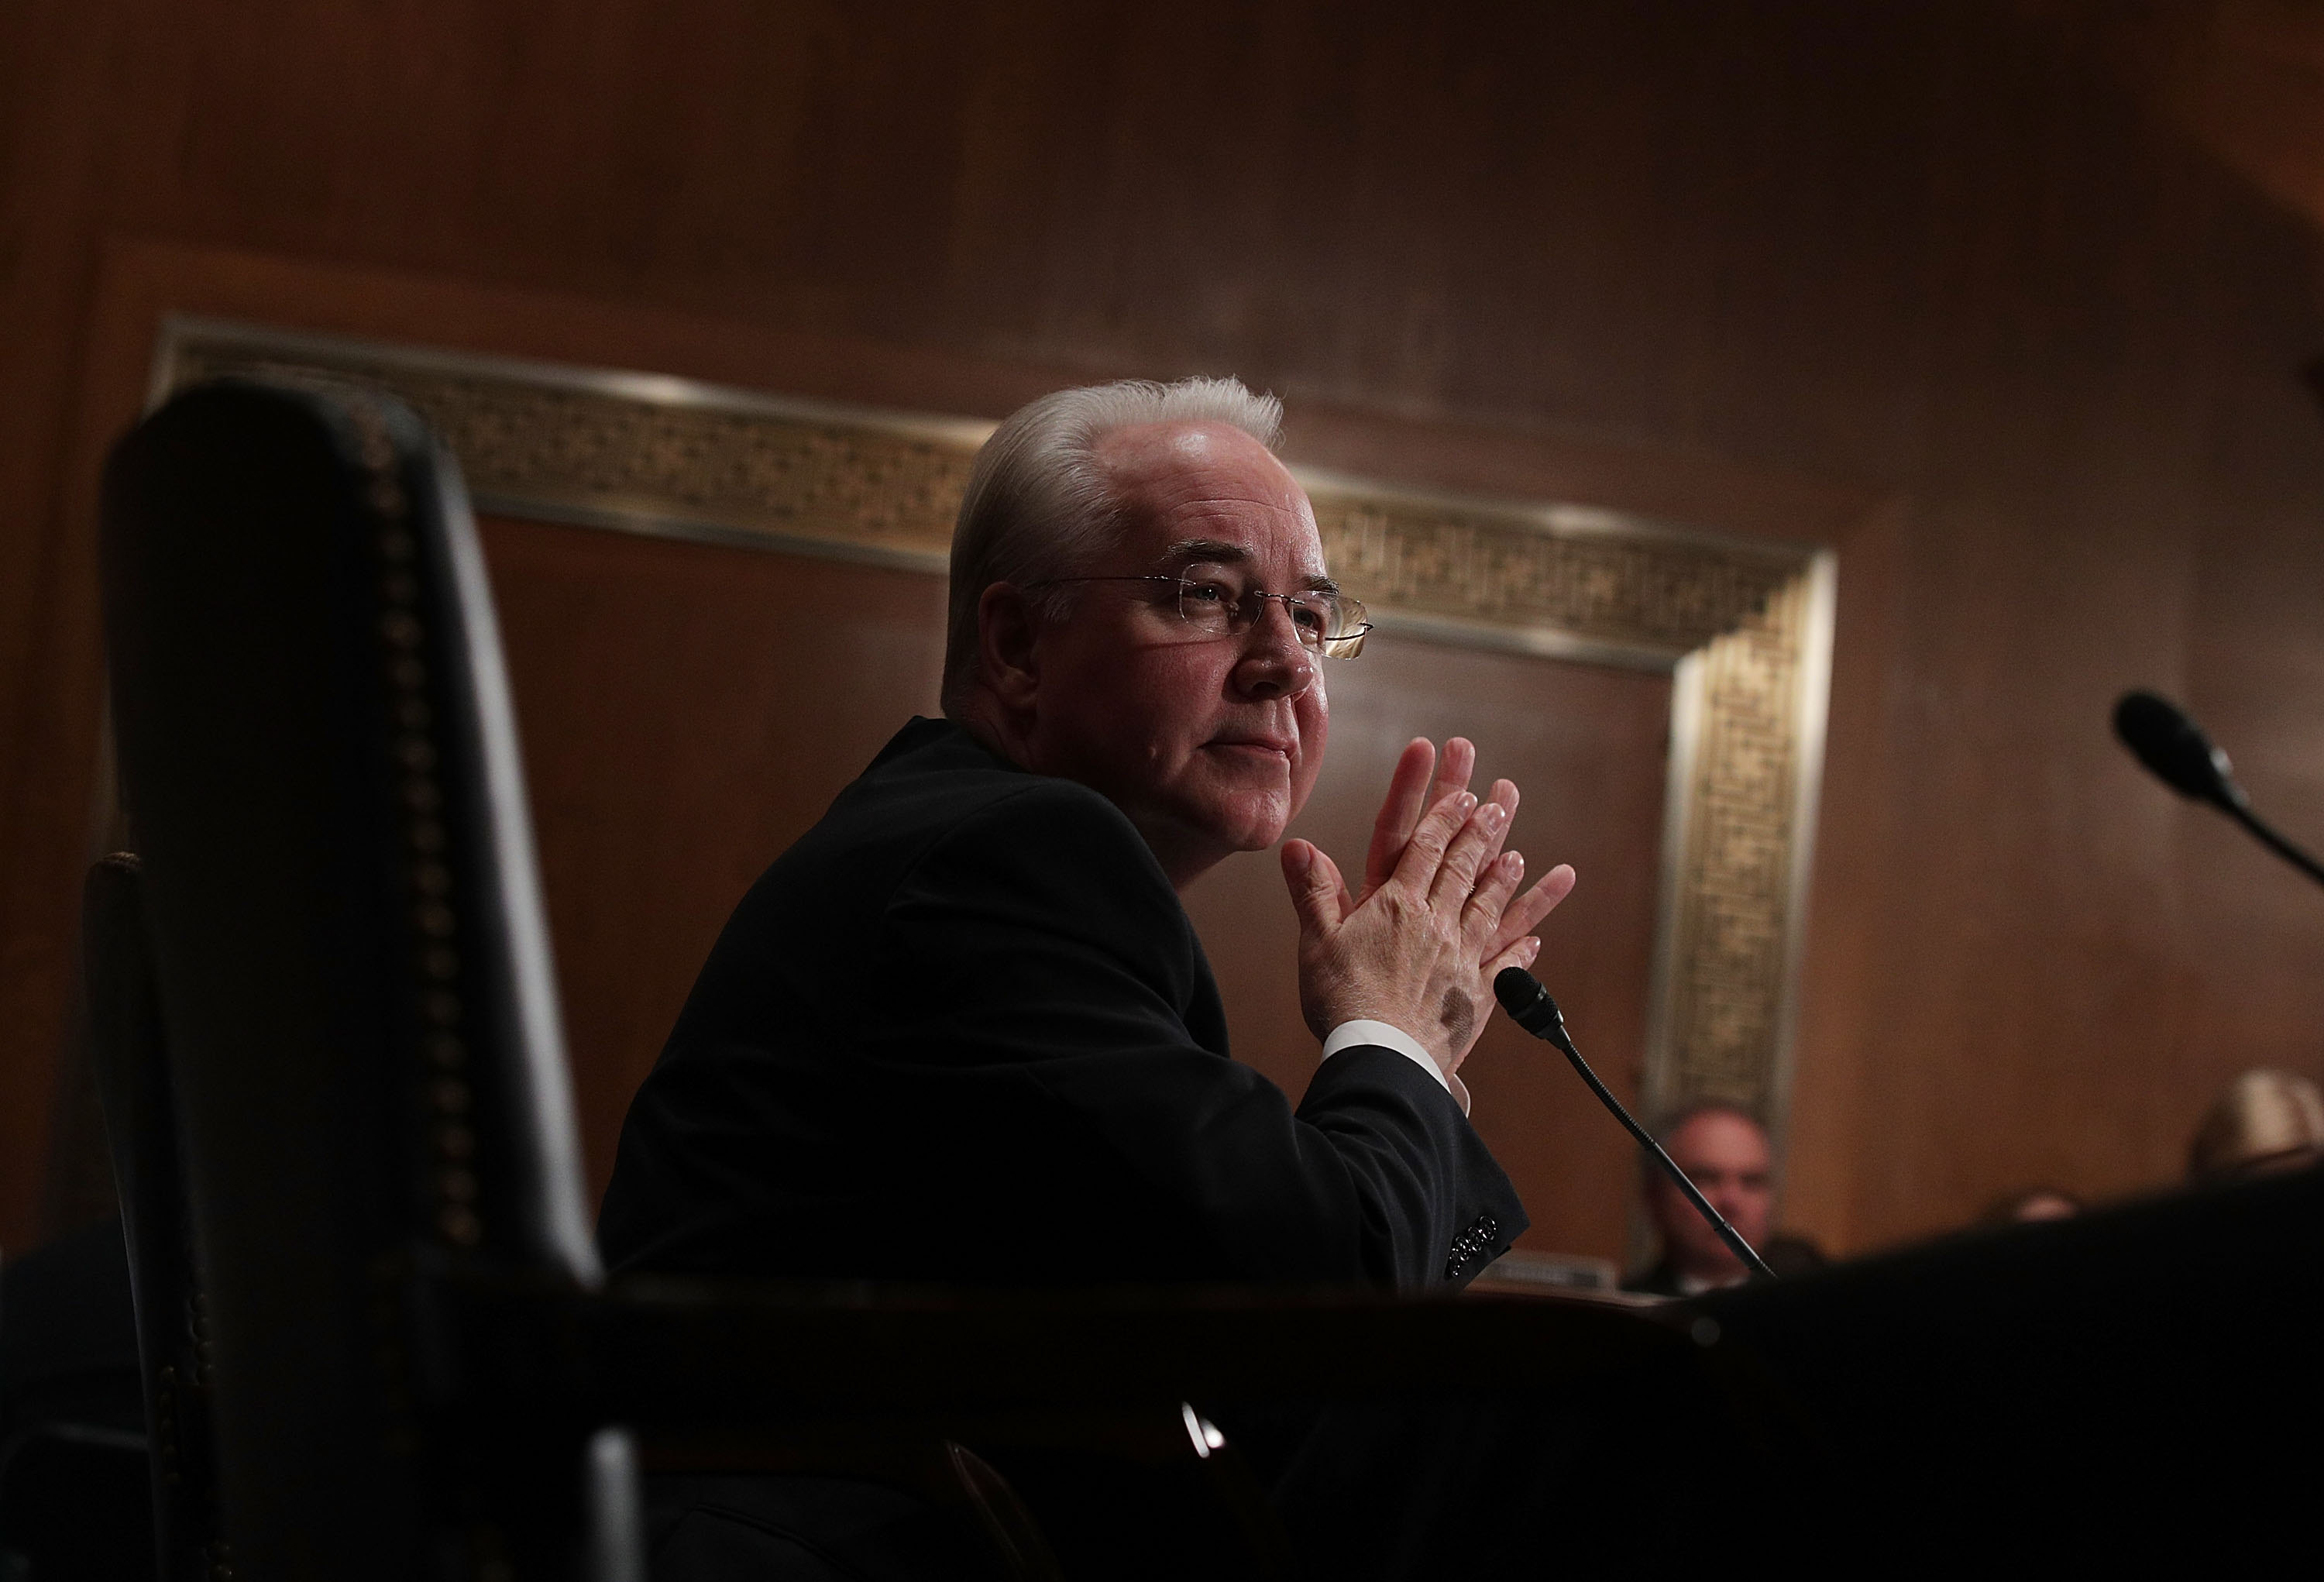 U.S. Health and Human Services Secretary Tom Price, a physician, has been a fierce critic of the Affordable Care Act. (Getty Images)